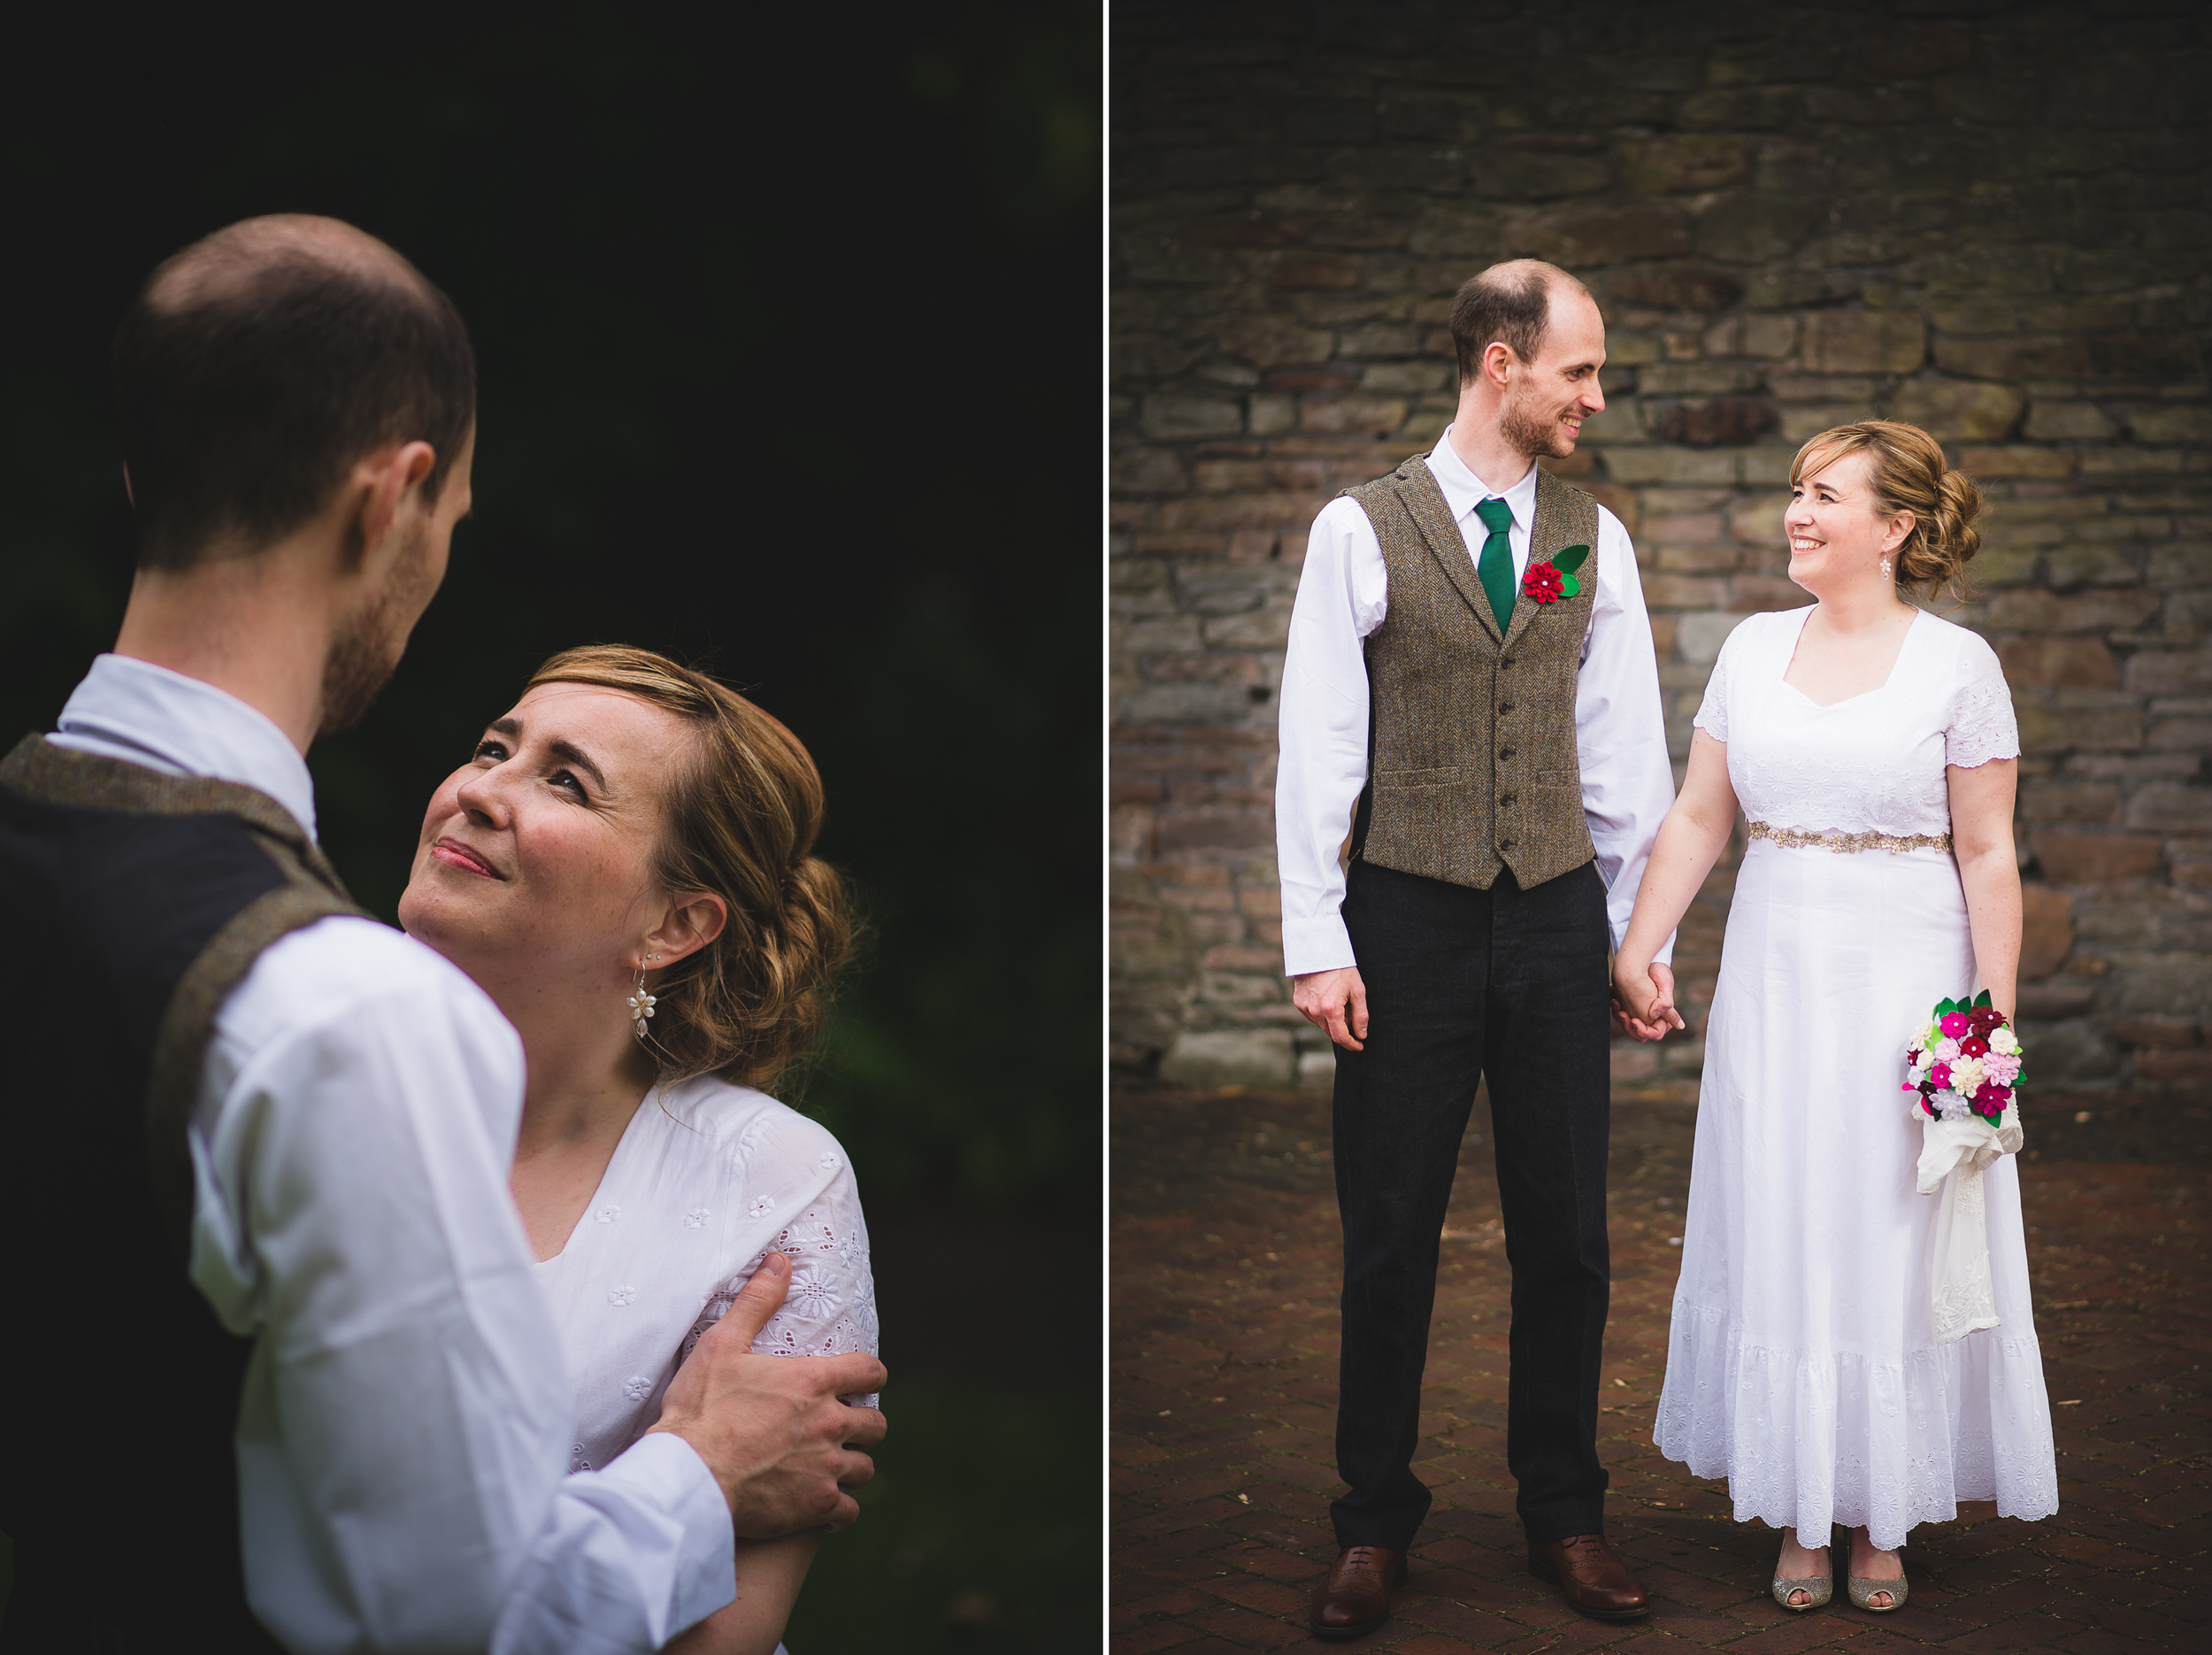 natural couples photo ideas for wedding photographers in bristol